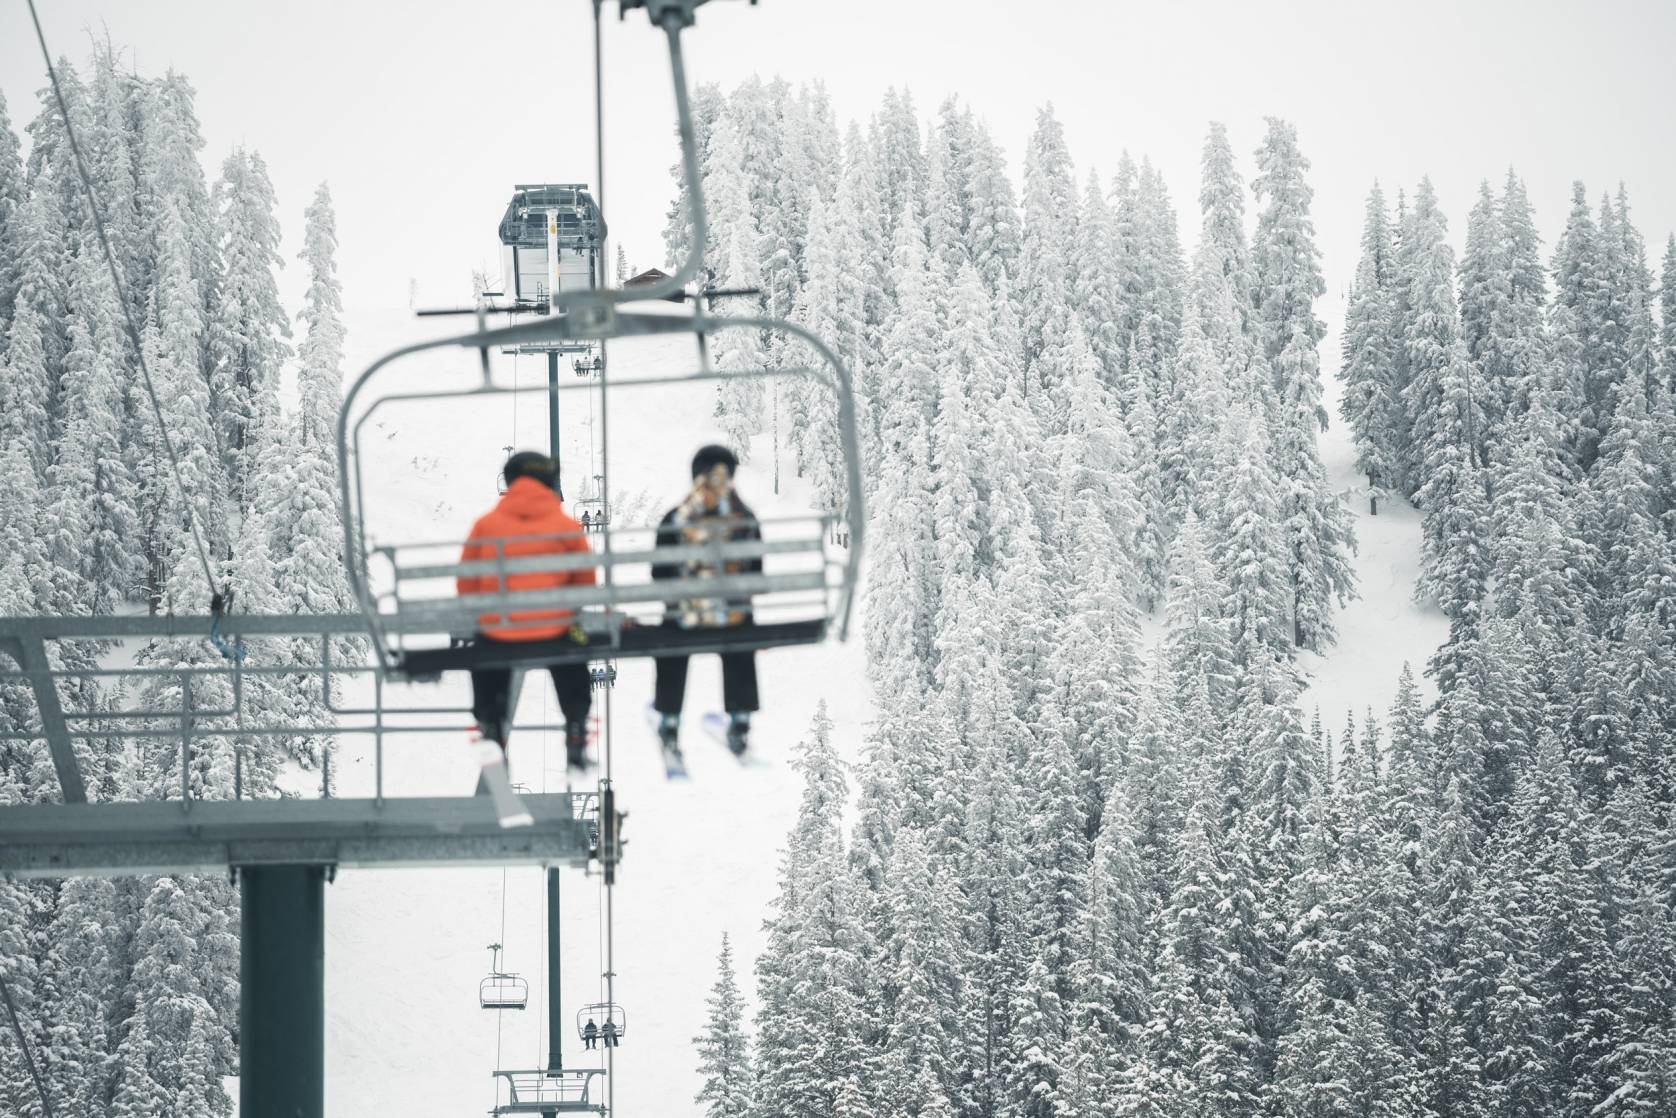 Backcountry Semiannual Sale Skiers in Mountains on Chairlift with Snowy Trees